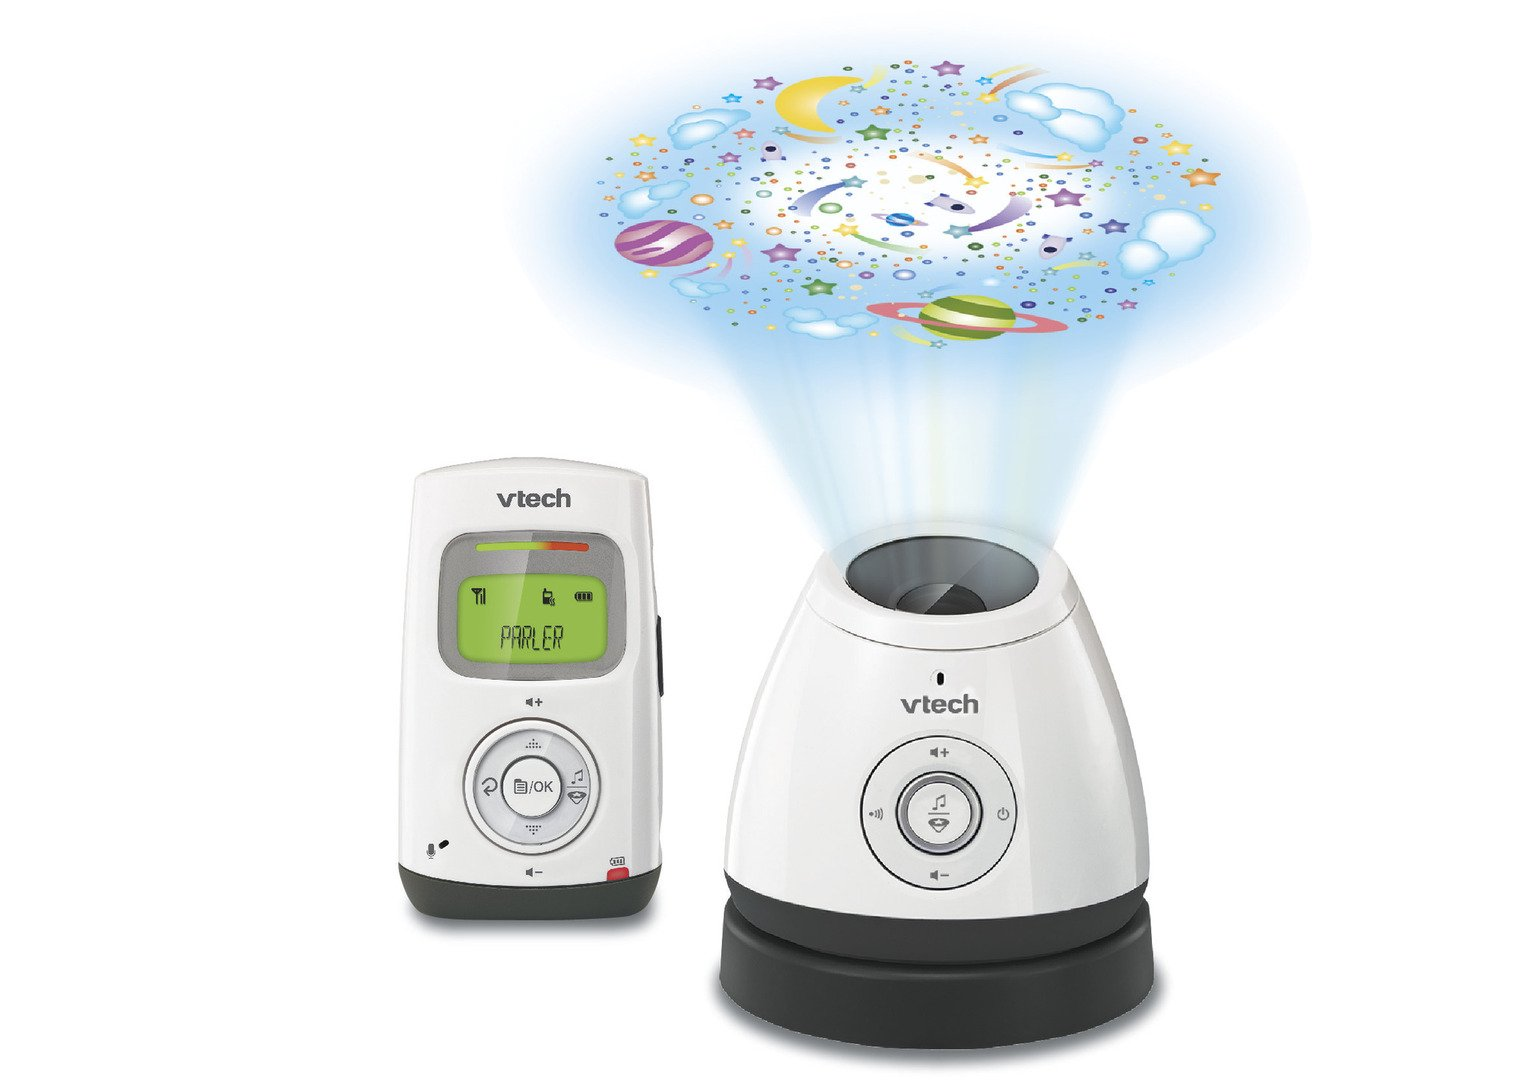 VTech 2200 Audio Baby Monitor